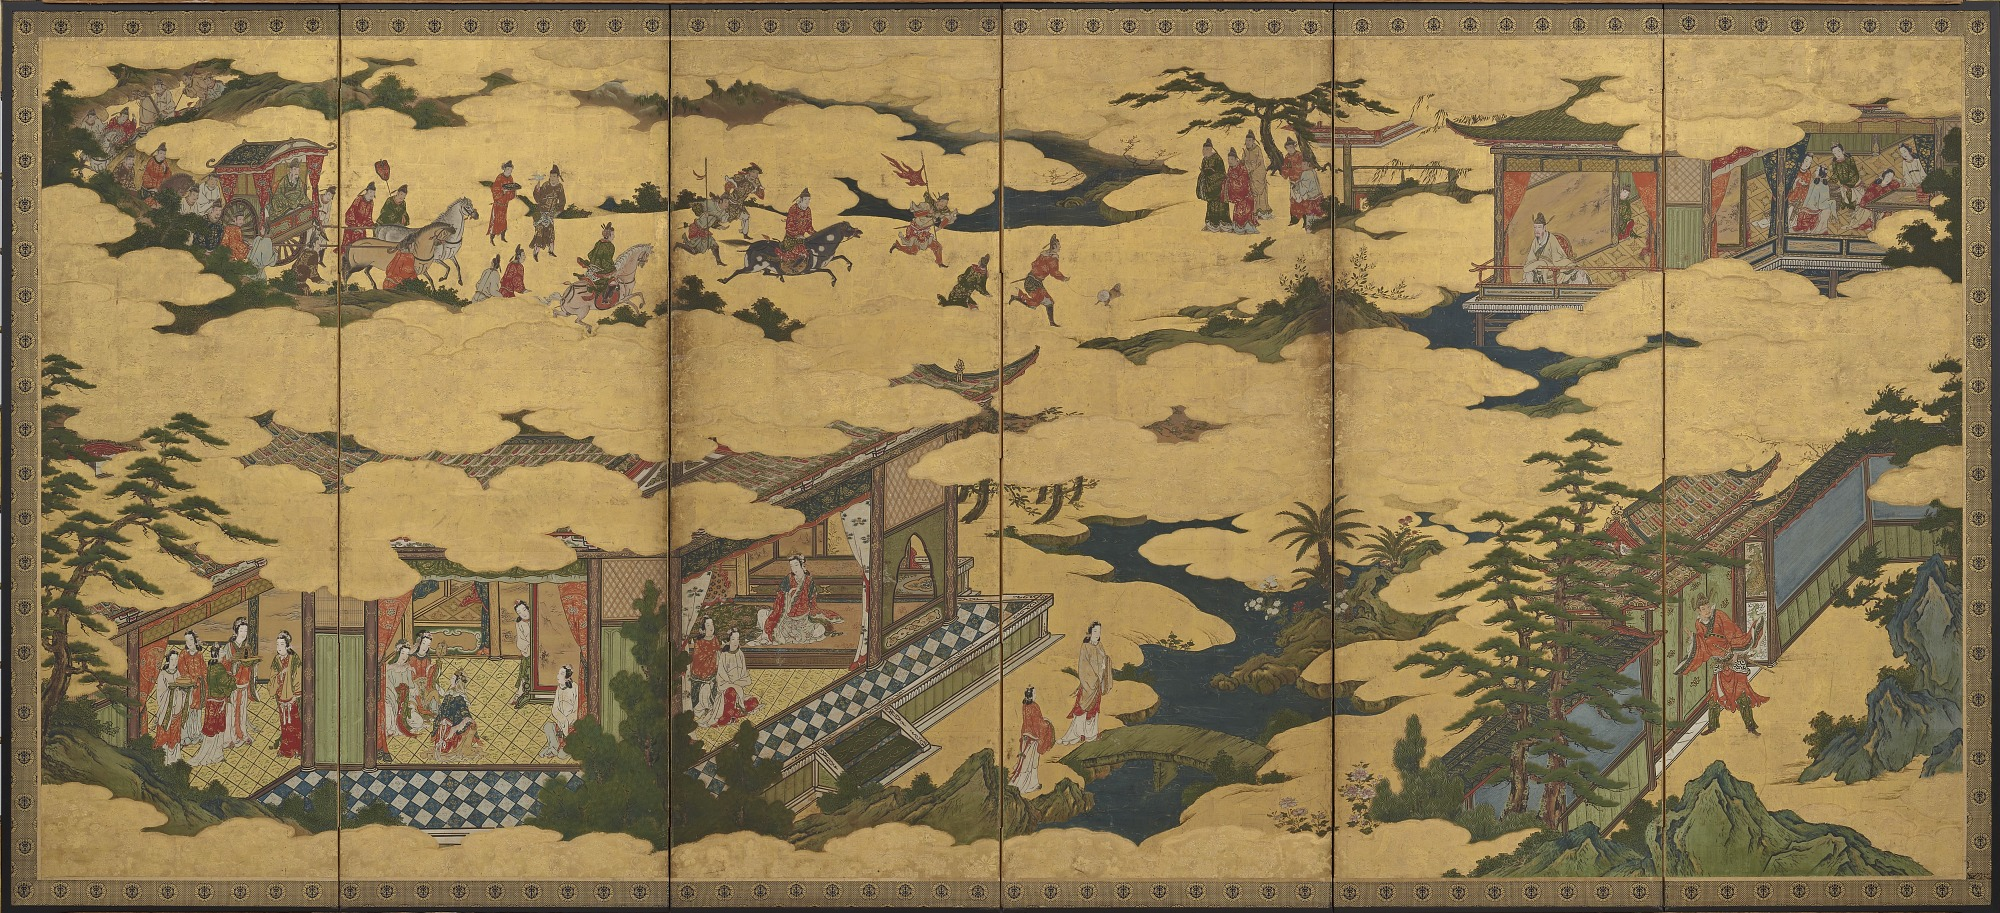 : Scenes from the life of the Ming Huang Emperor and Yang Guifei (one of a pair with F1901.21)